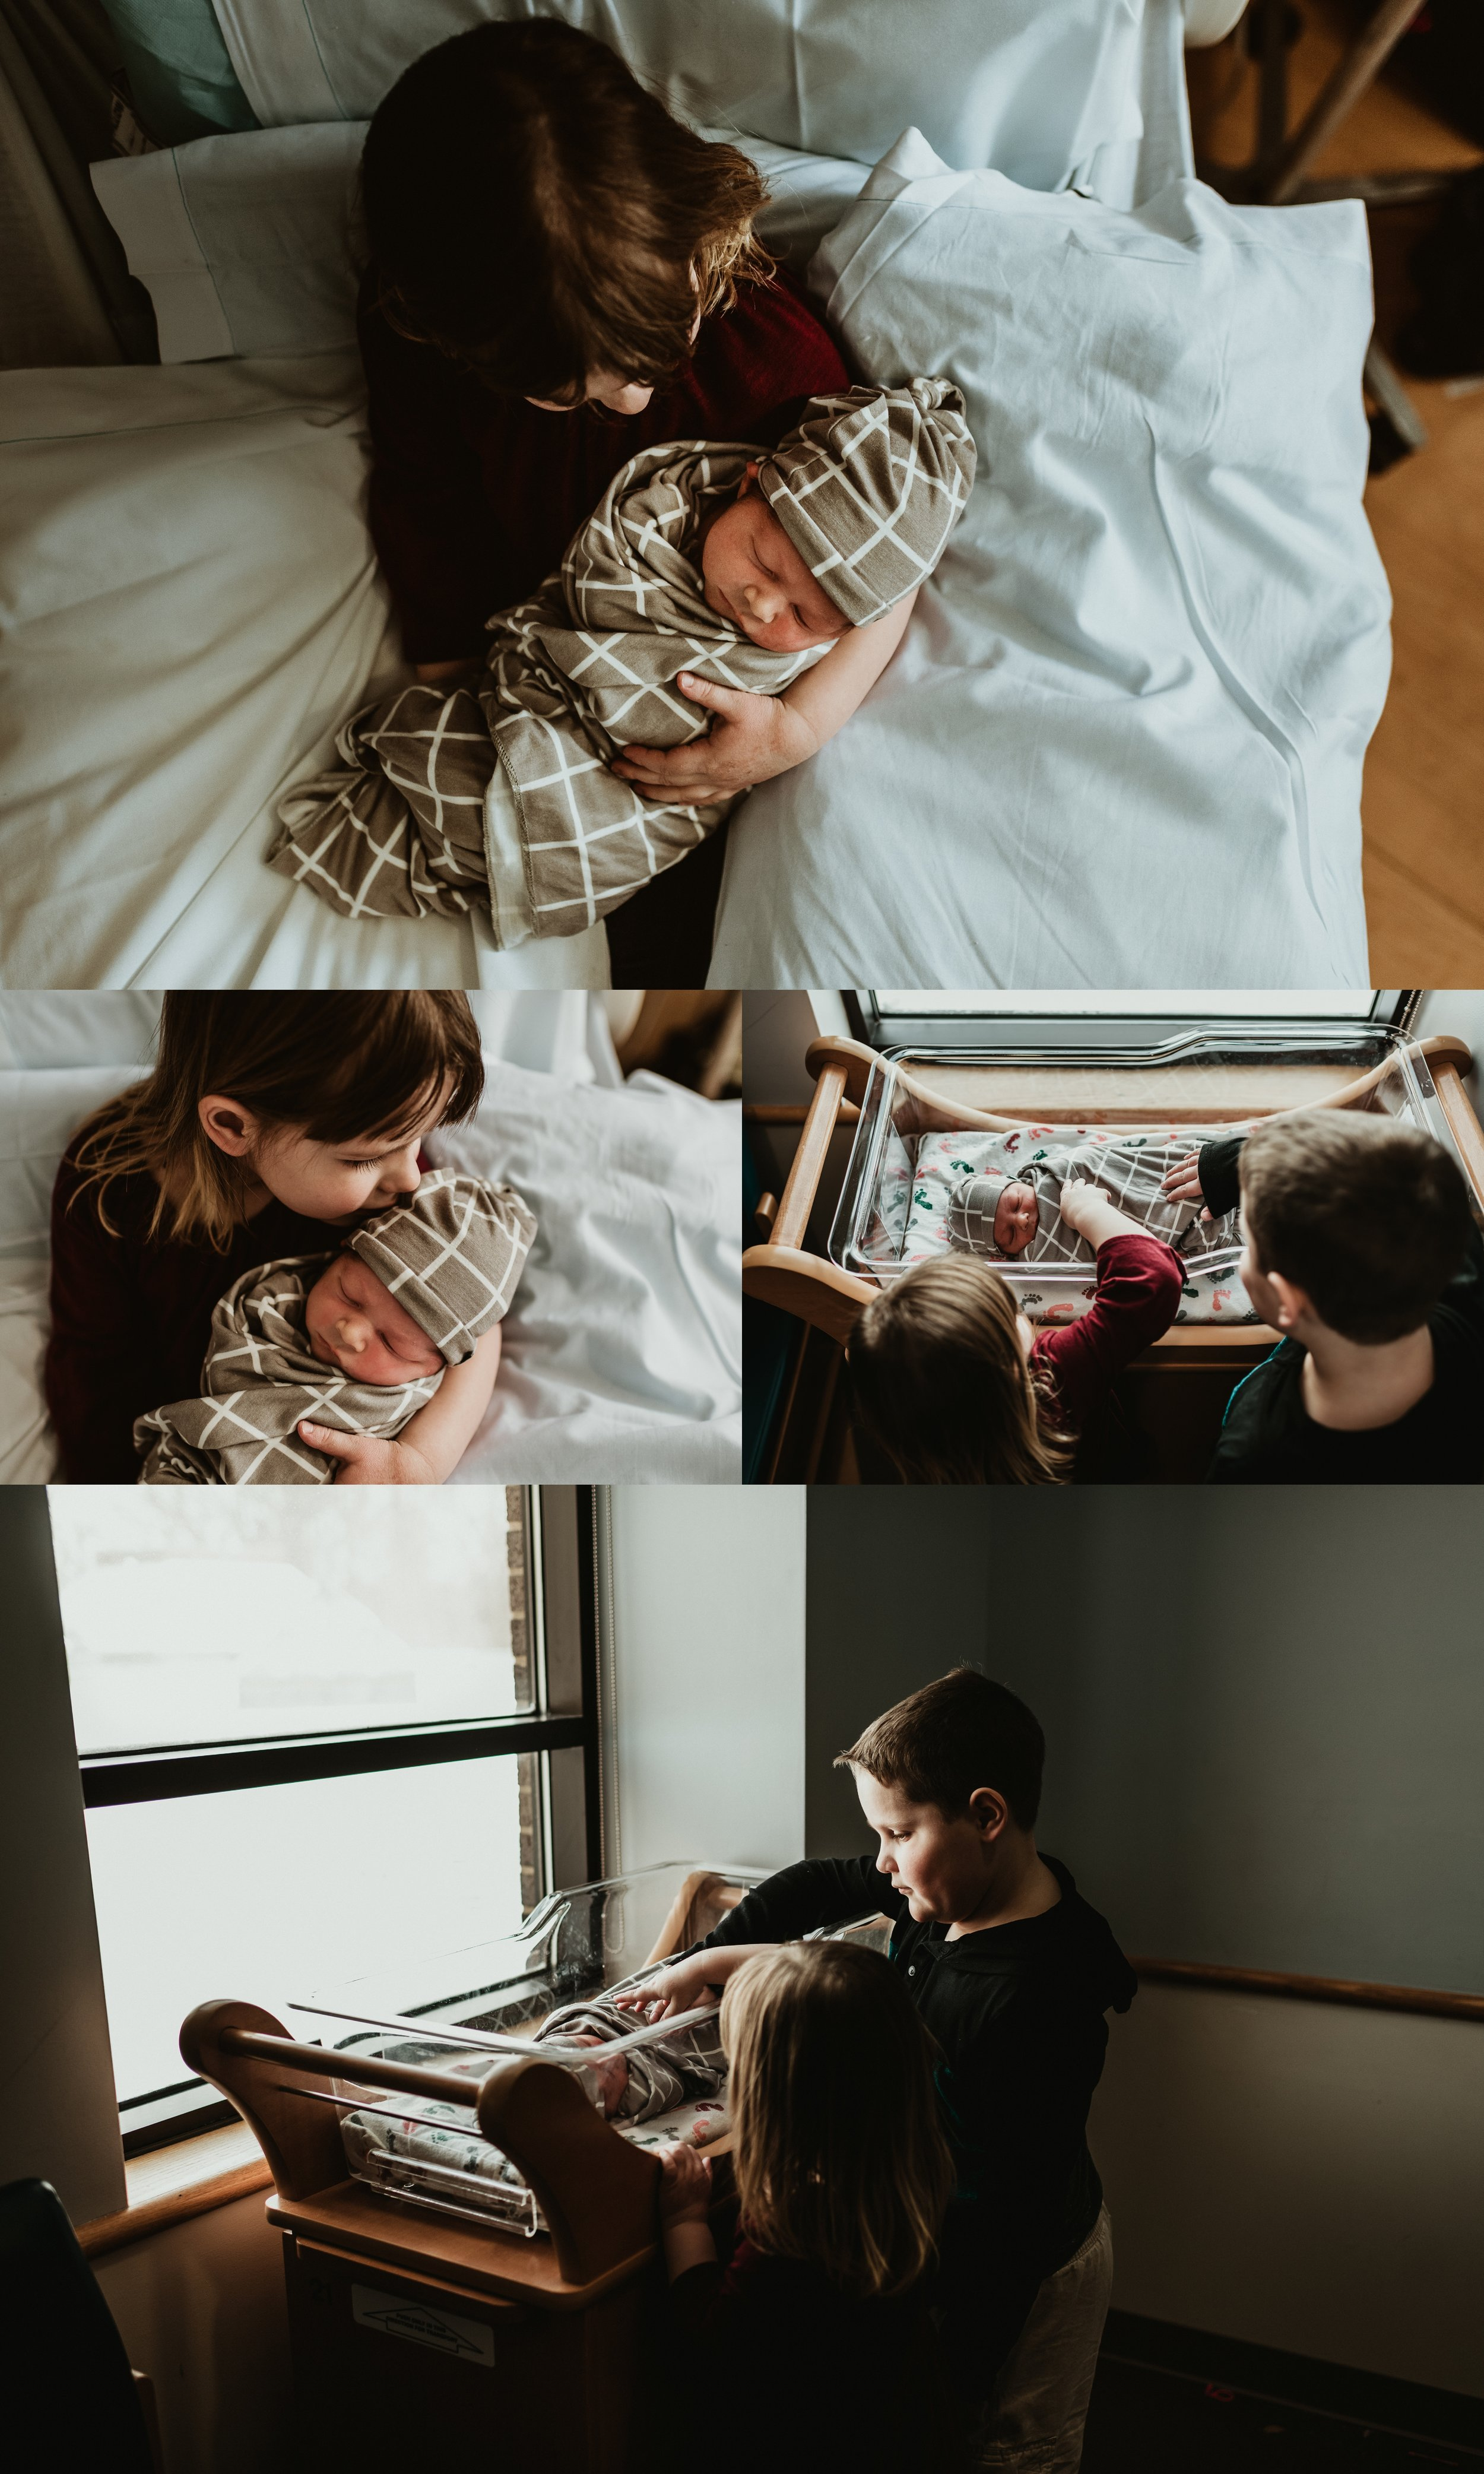 Fresh 48 Newborn Hospital Photo Session | Documentary & Lifestyle Newborn Photo | Baby Boy  | 20 Hours Old | Big Sister with New Baby